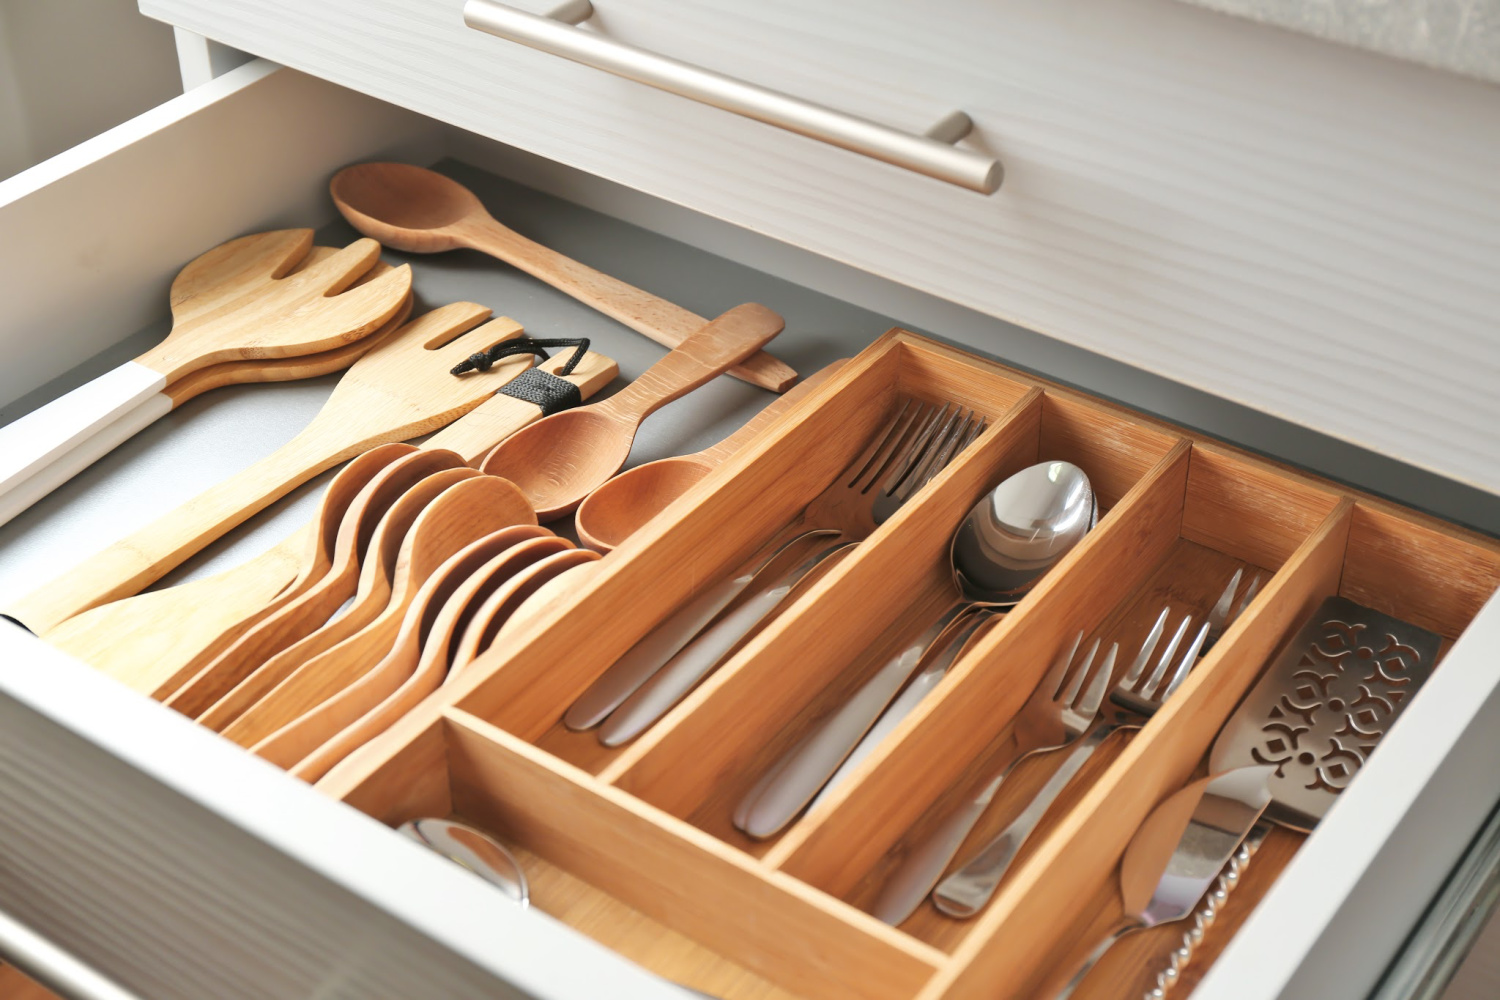 organized silverware drawer